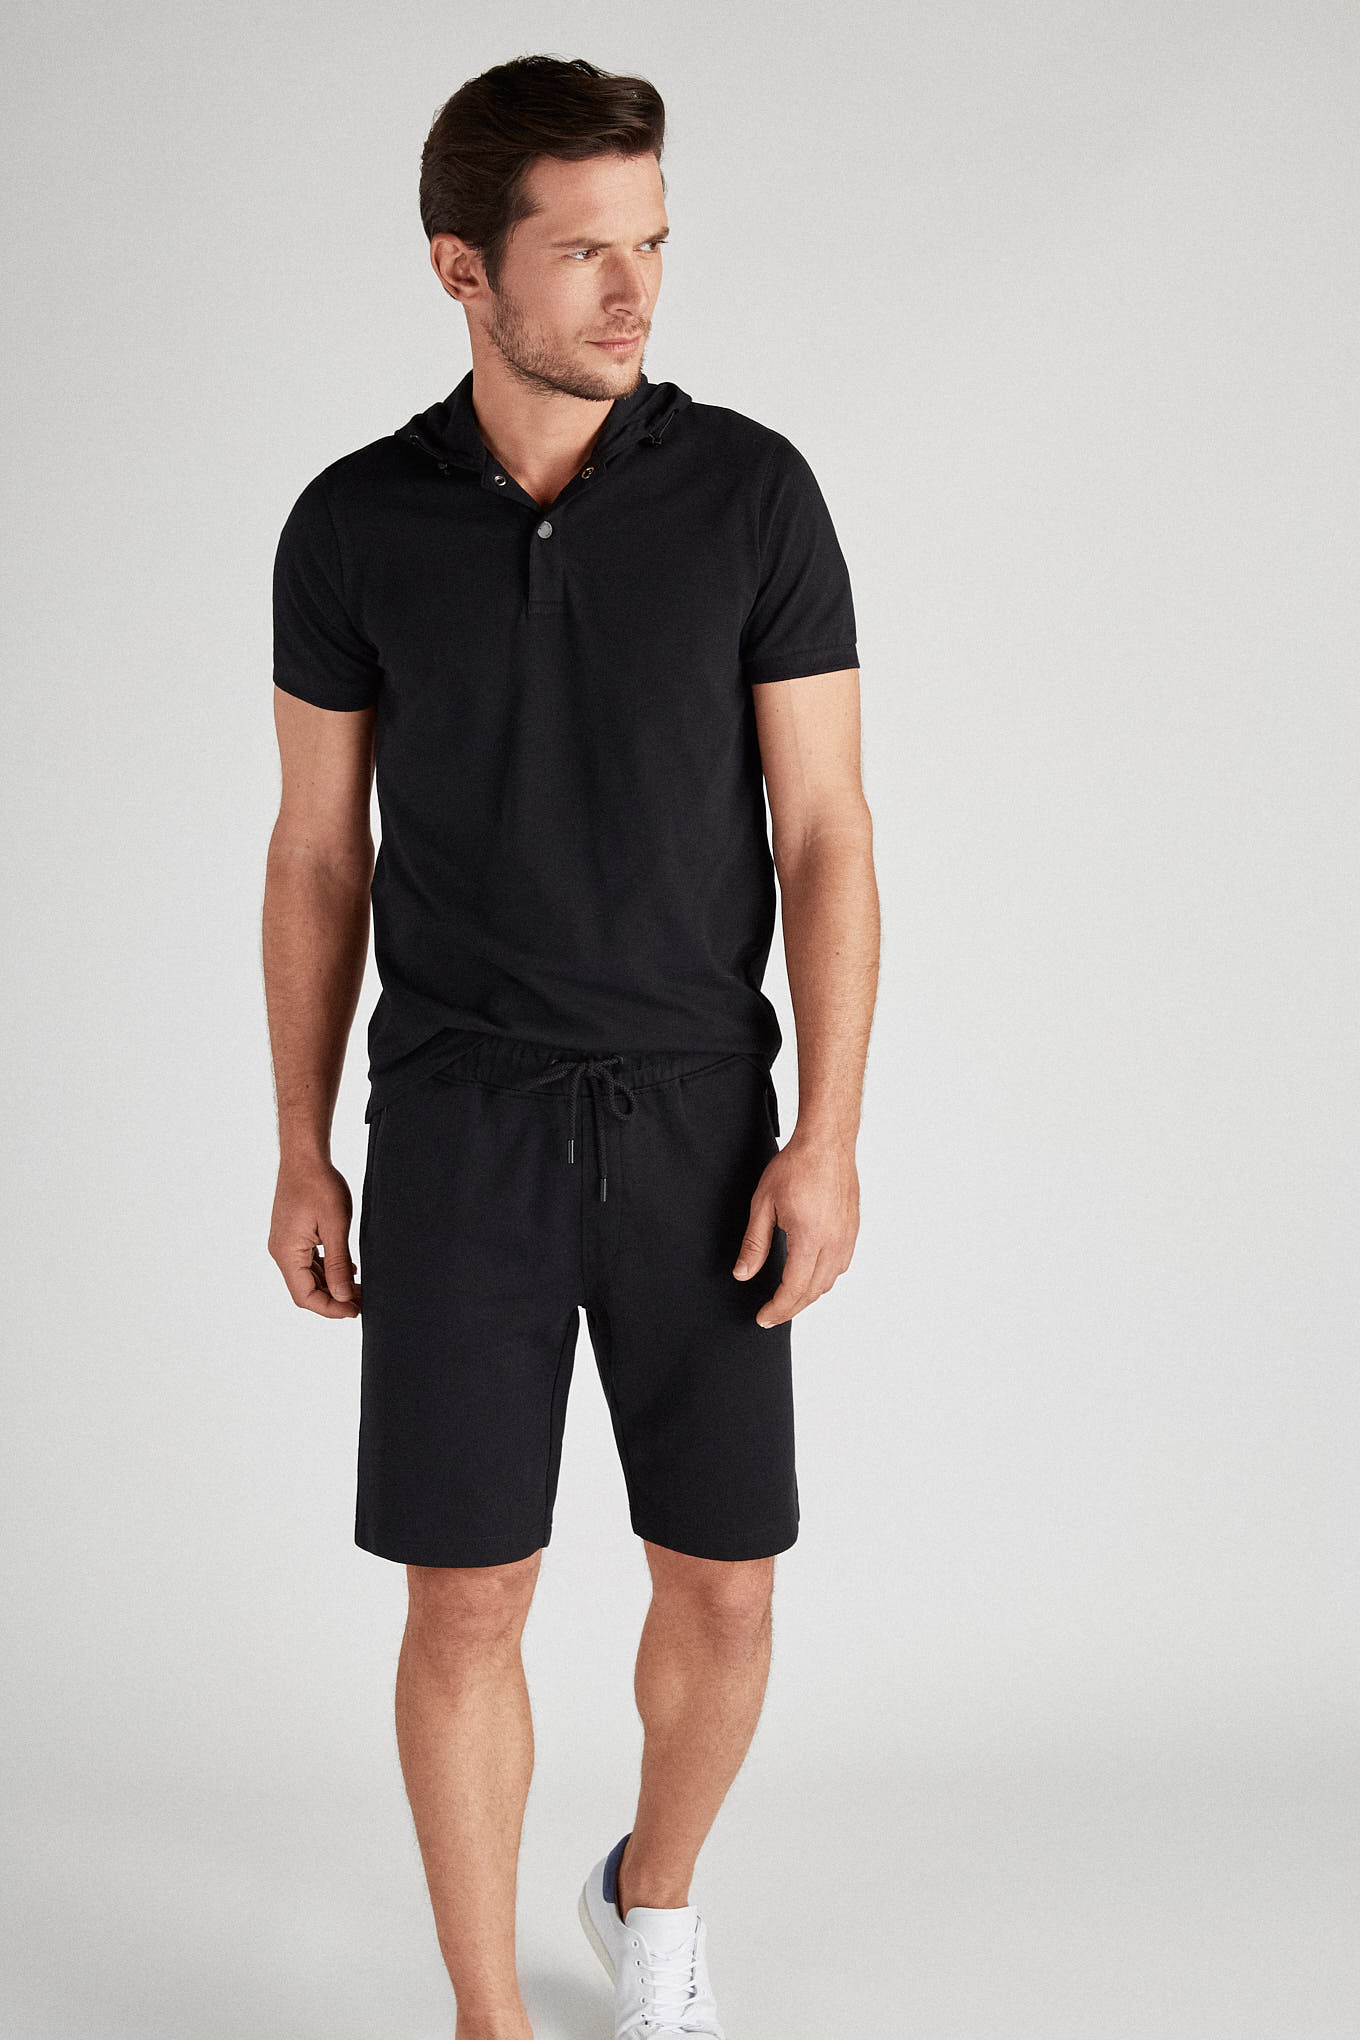 Sportswear Shorts Black Sport Man